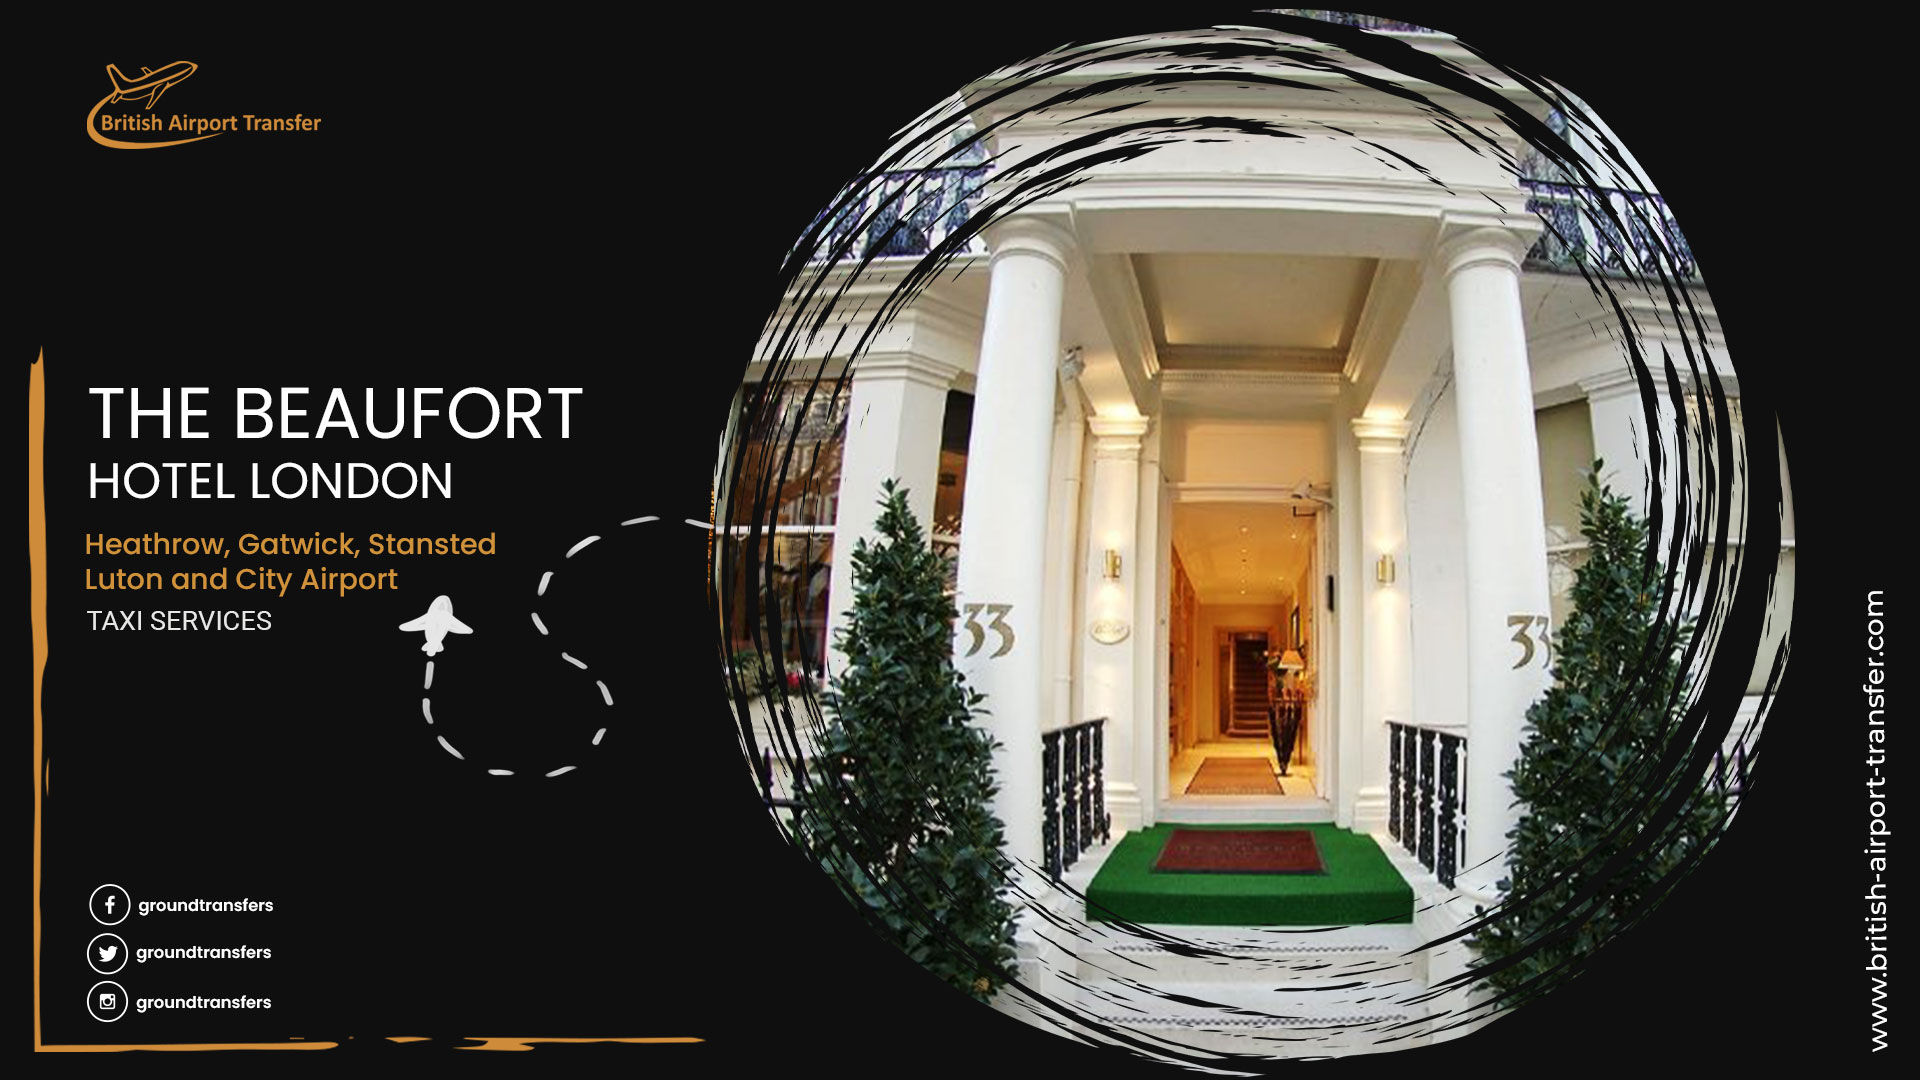 Taxi Service – The Beaufort Hotel London / SW3 1PP